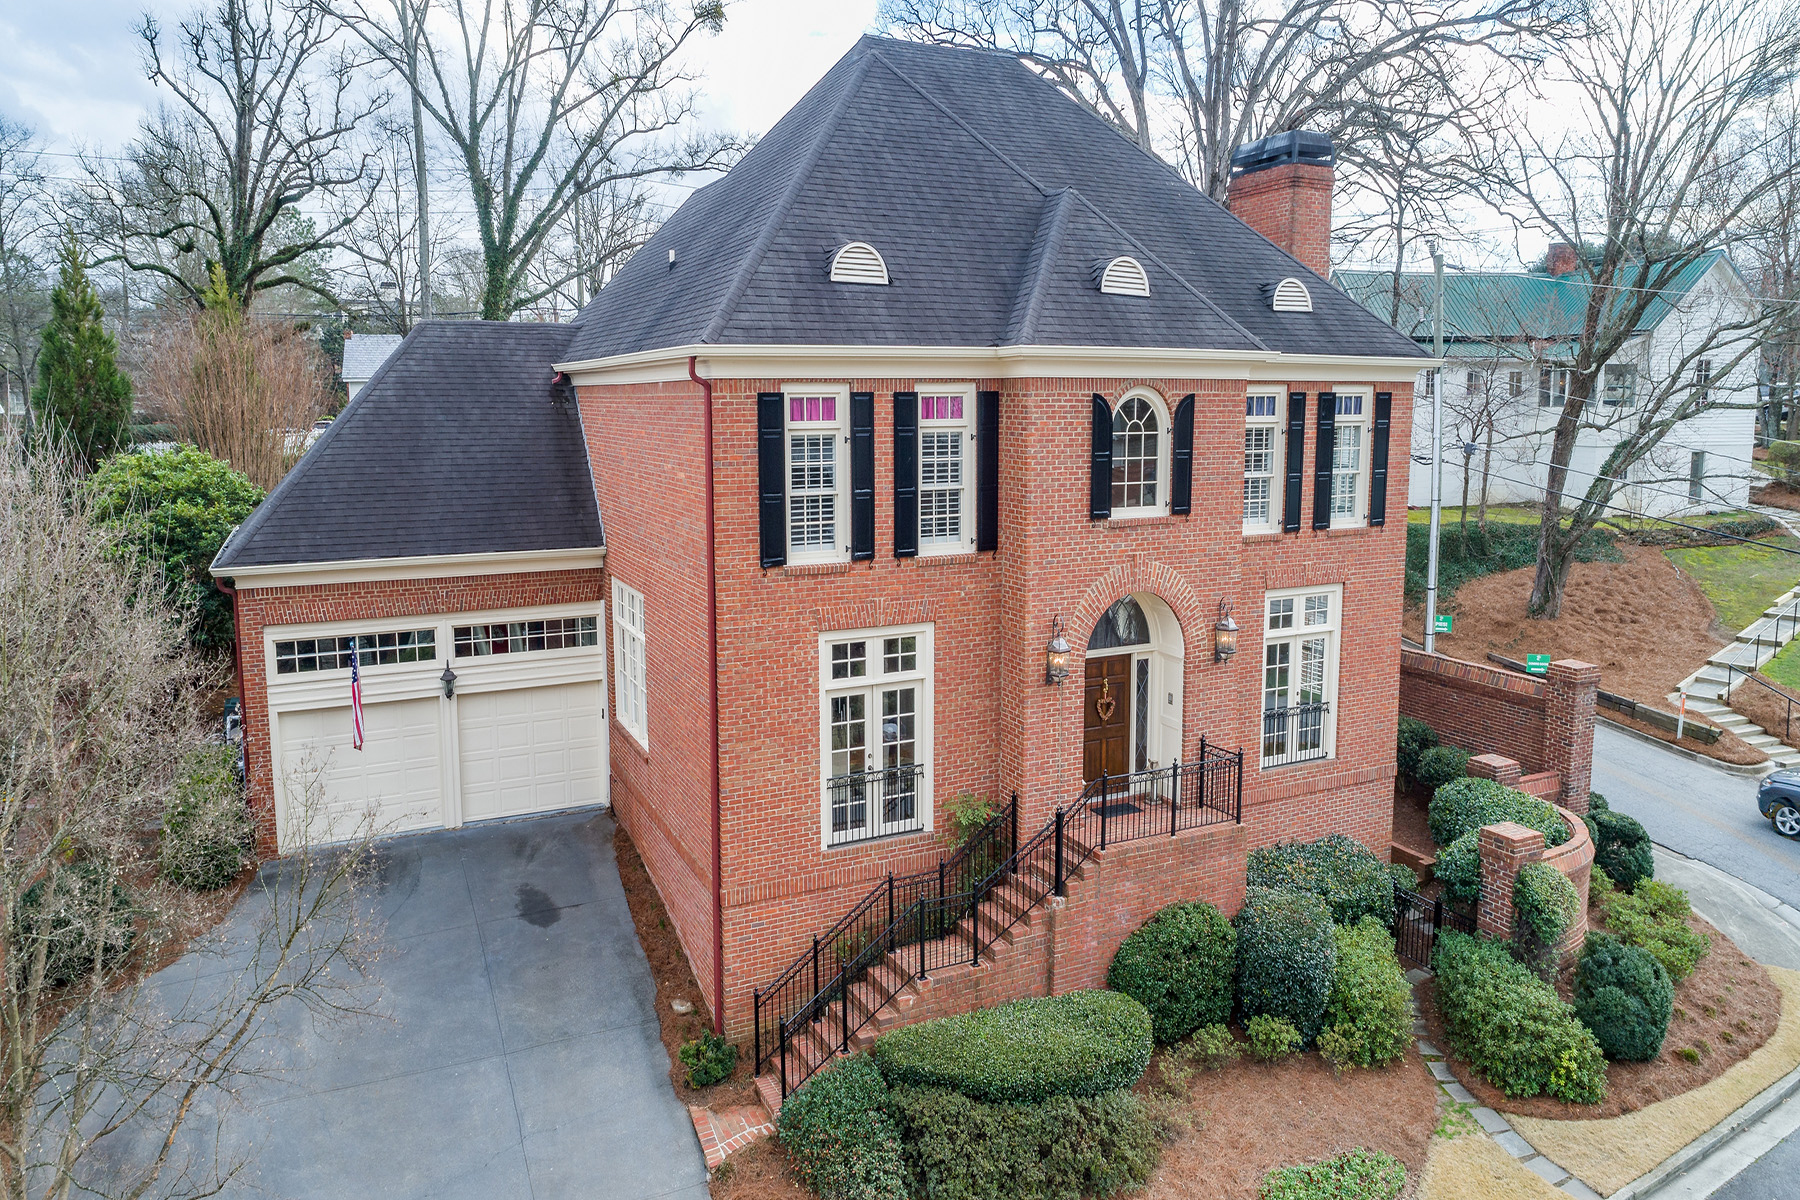 Single Family Home for Sale at Swim and Golf at Home in Vinings Village 3014 Loridan Way Atlanta, Georgia 30339 United States